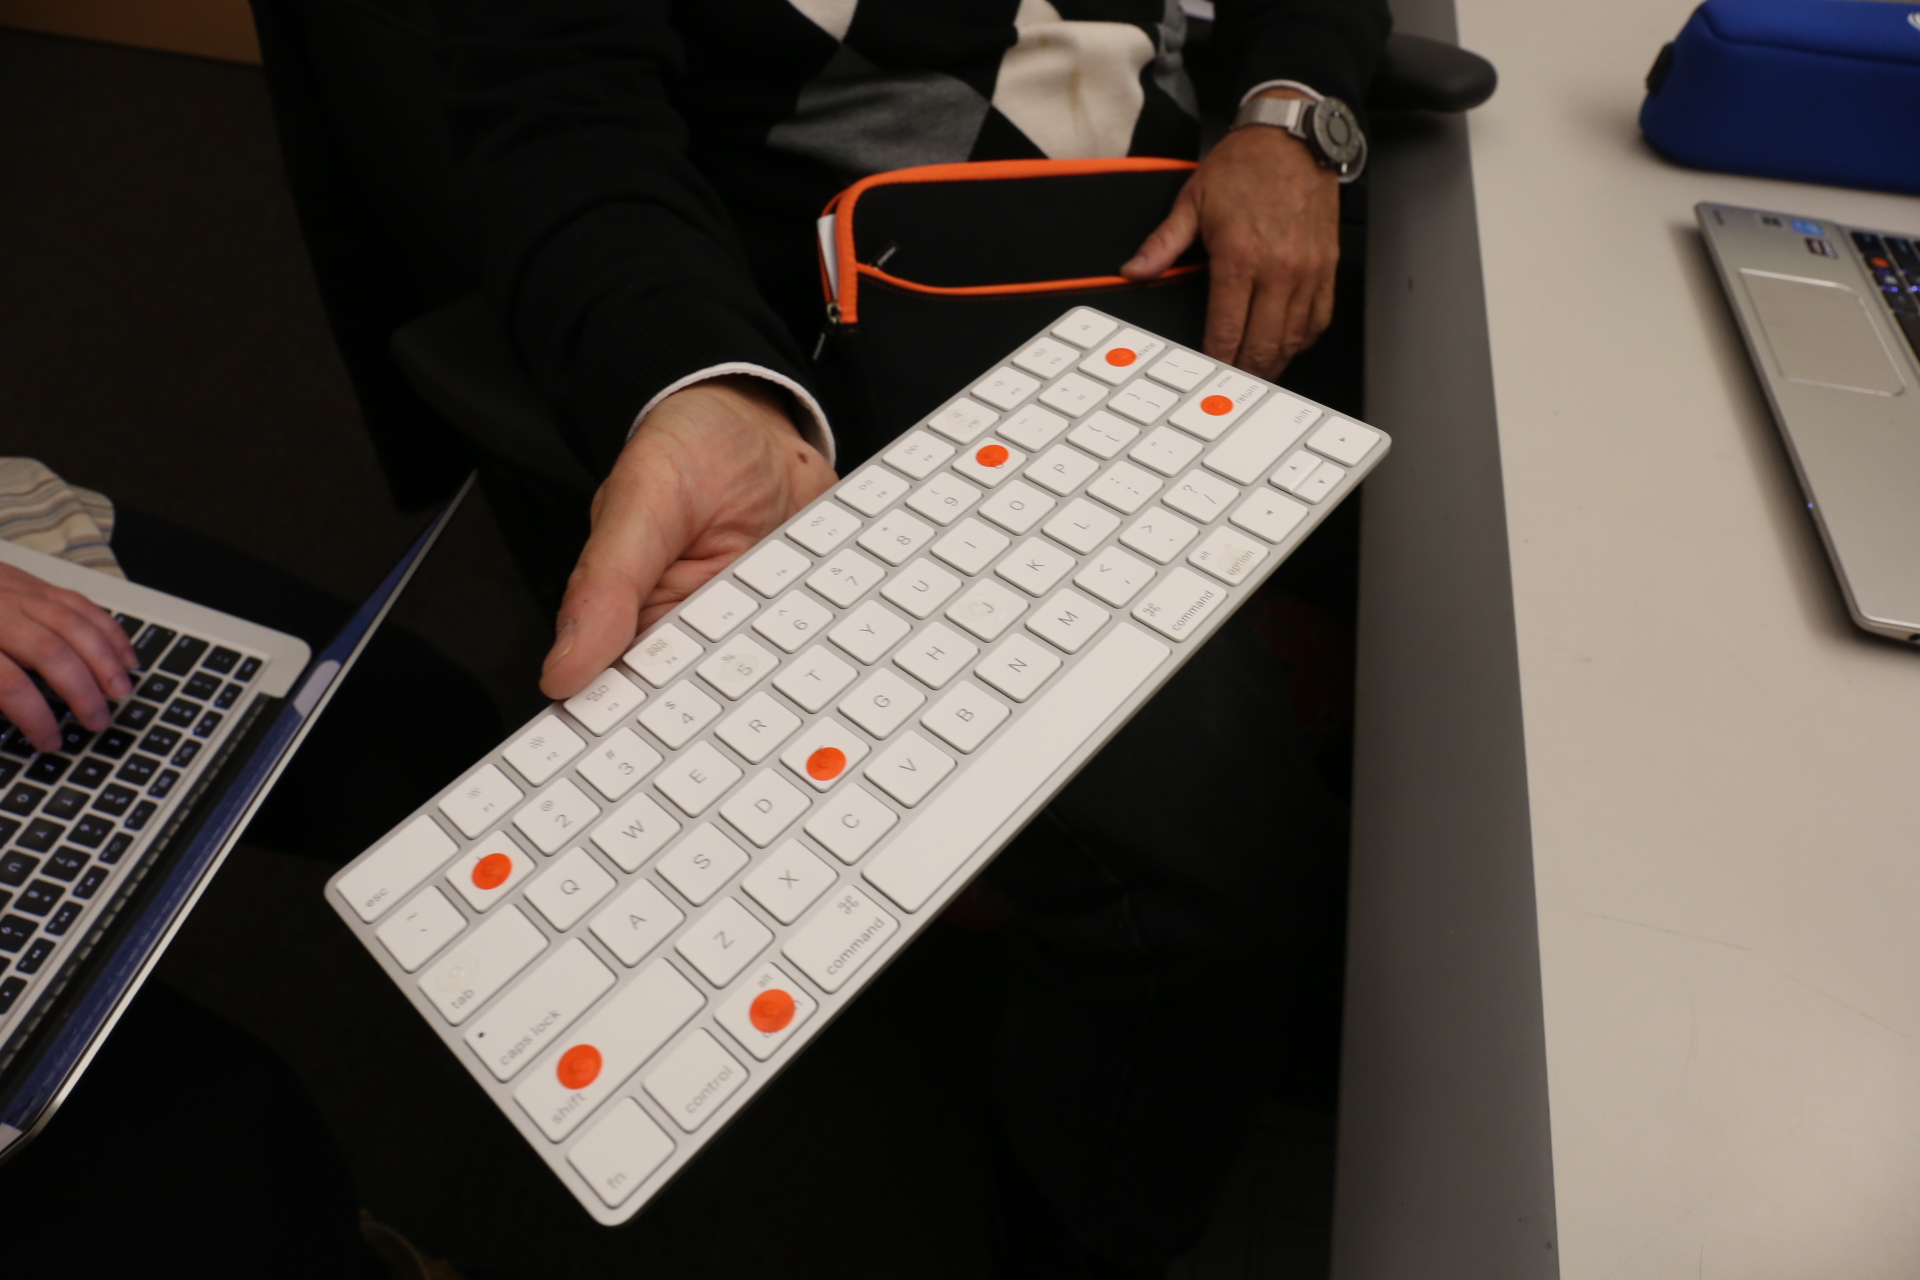 One PWVI interviewee customizes his bluetooth keyboard with tactile stickers to find his place while typing.